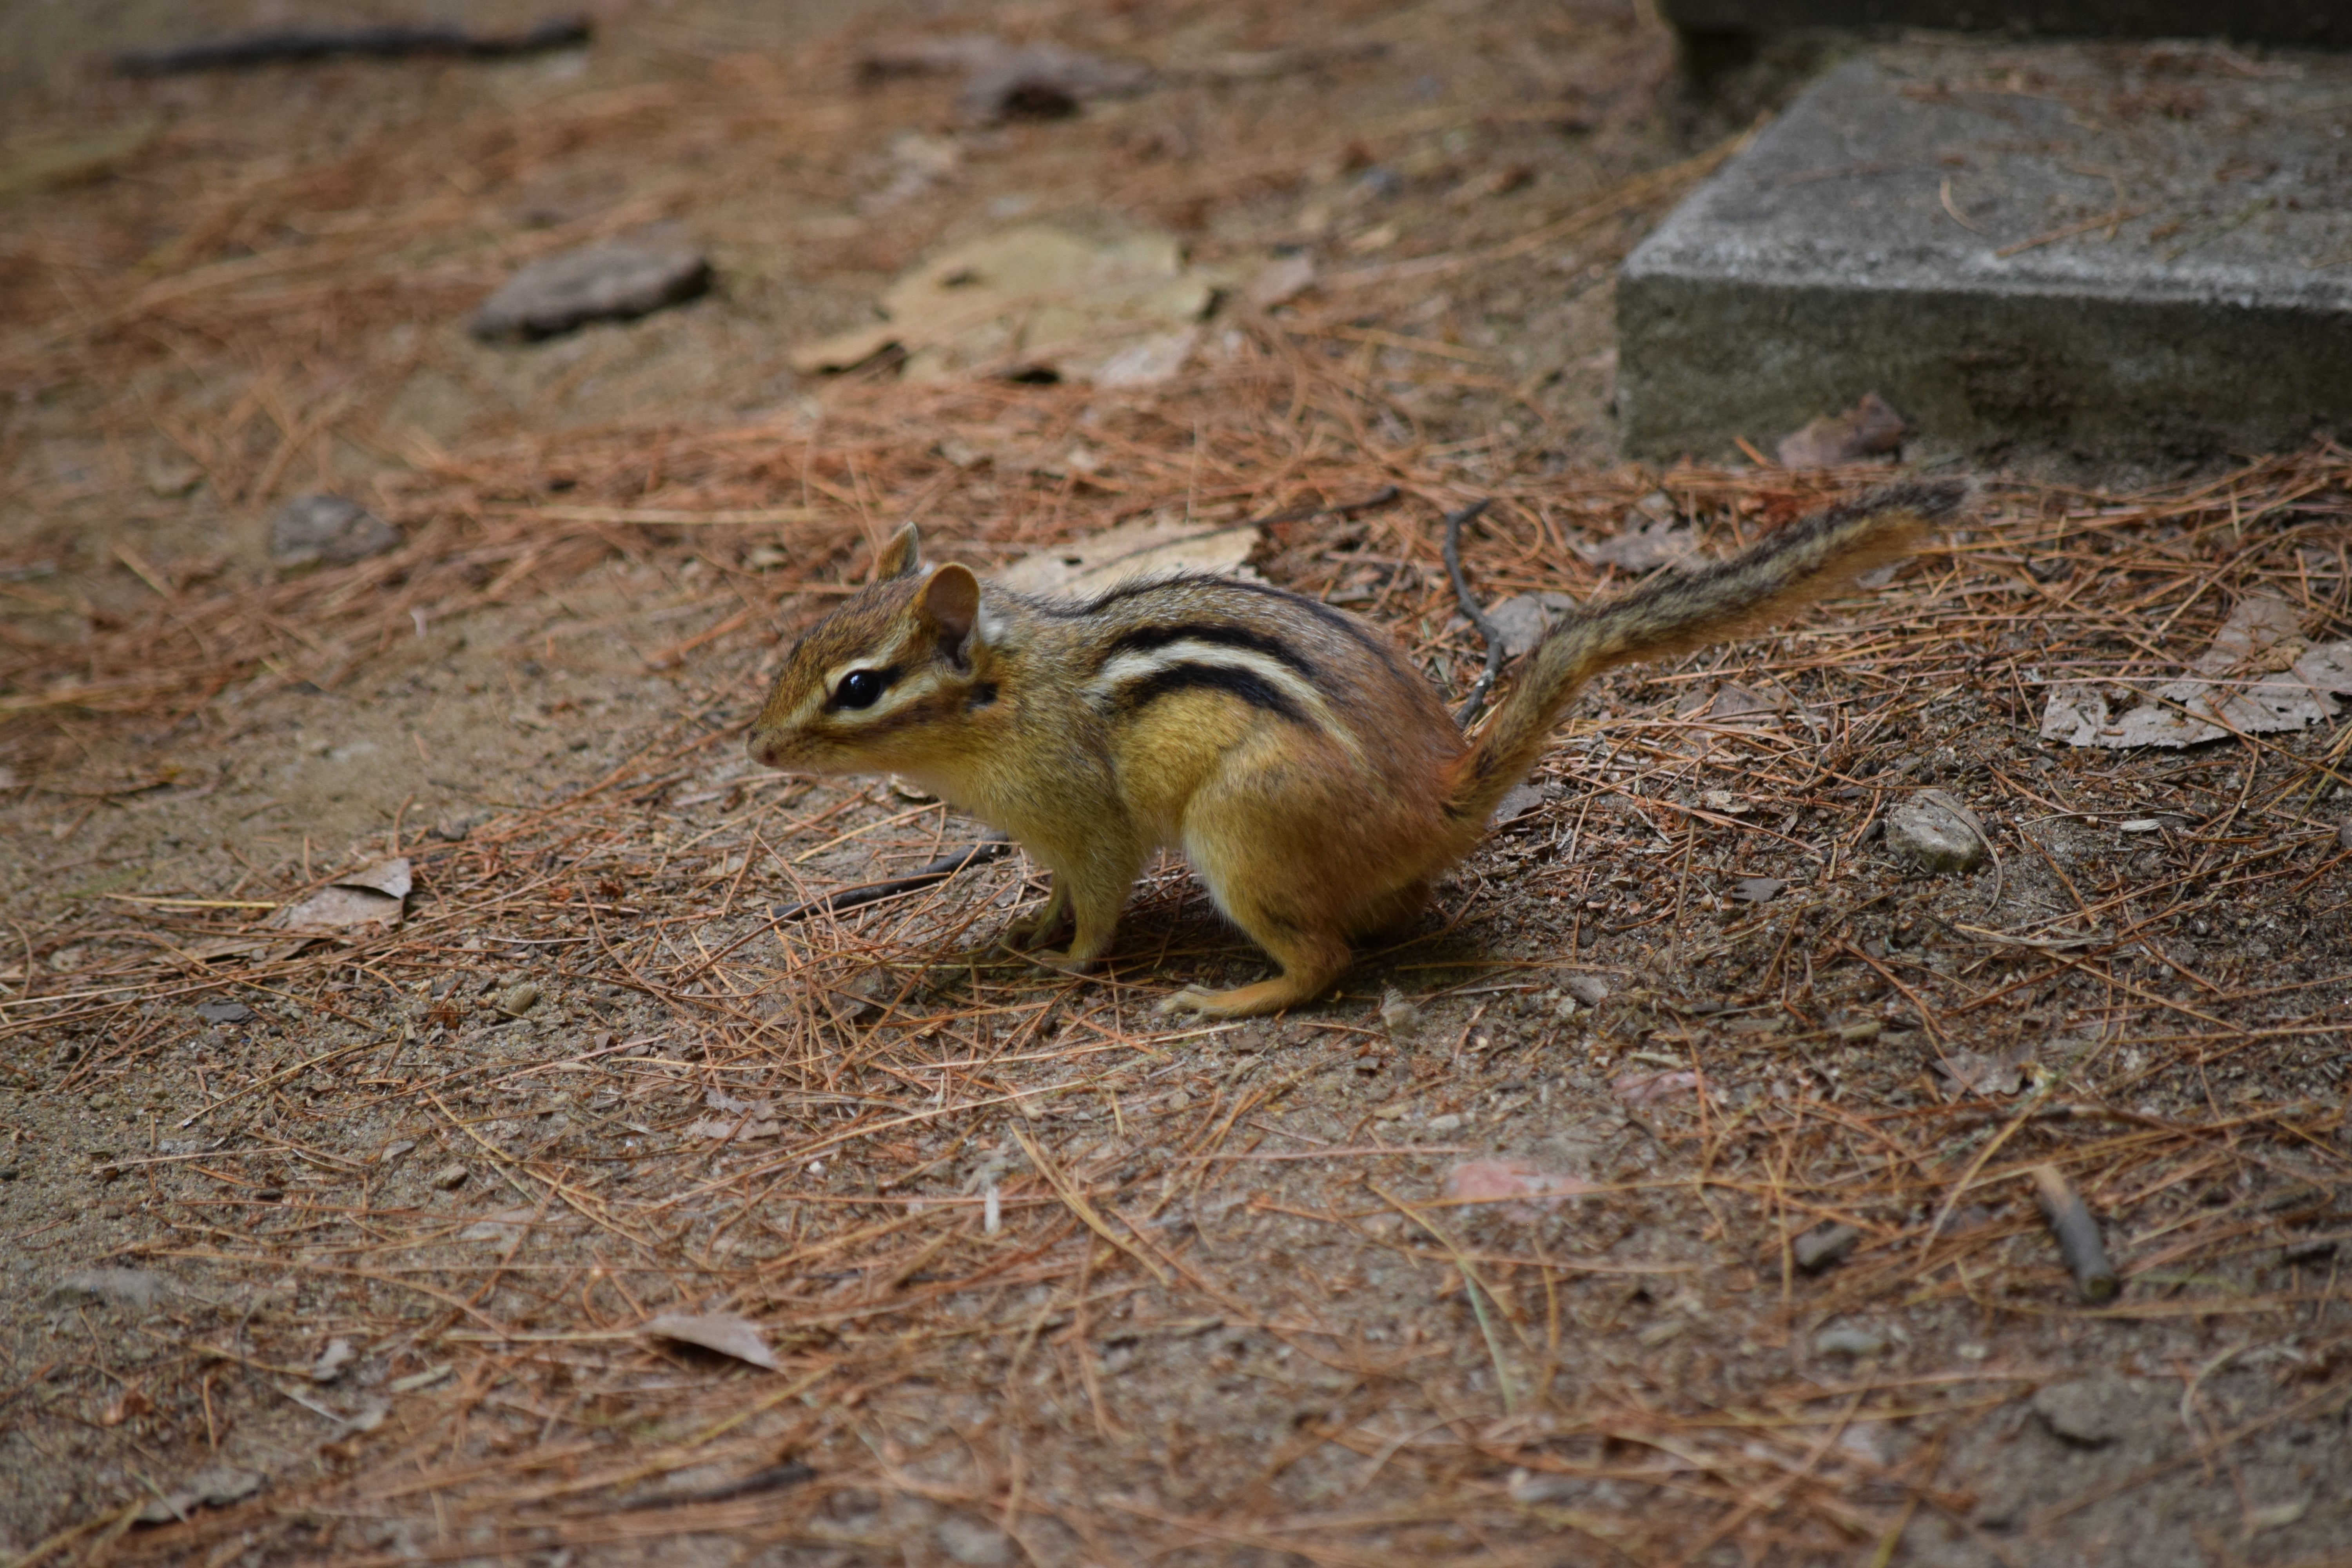 Not just amphibians: Chipmunks, look who else shares our habitat on Kawagama Lake!